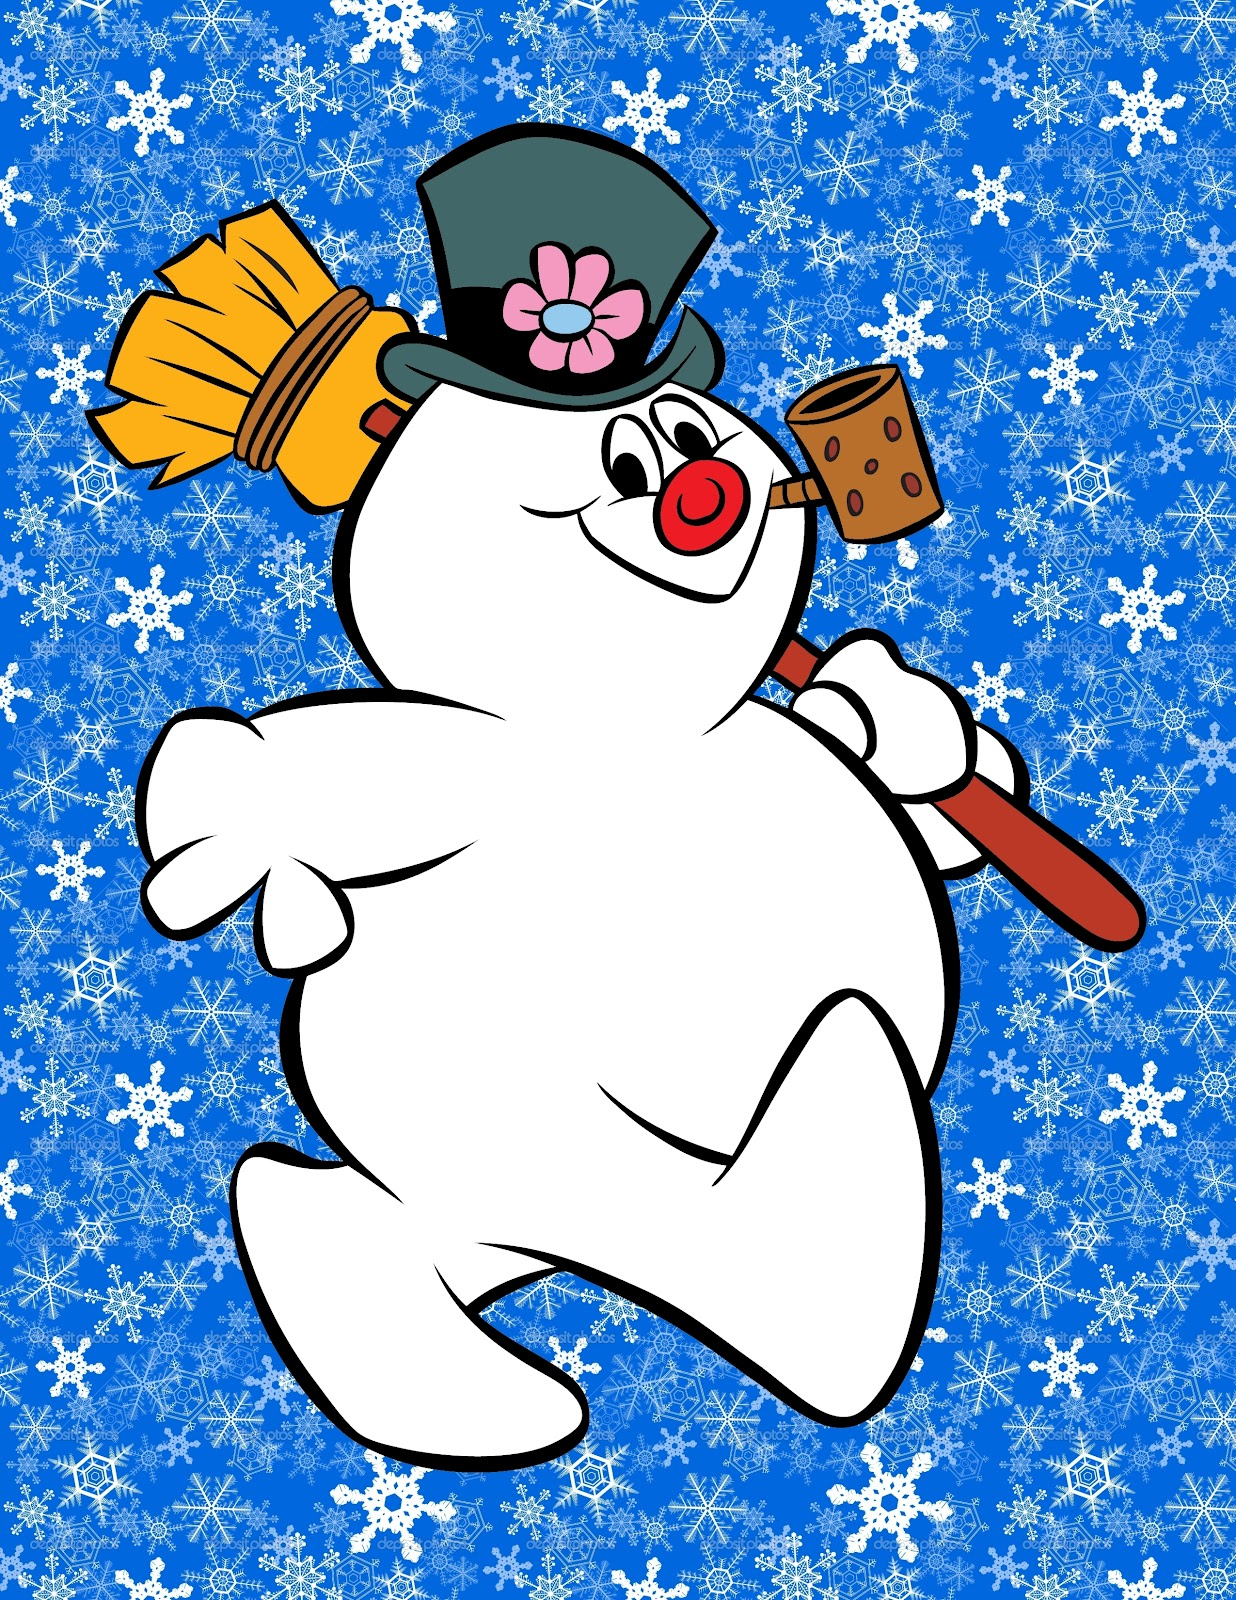 ... added this cool snowflake background to my FROSTY THE SNOWMAN art! 8